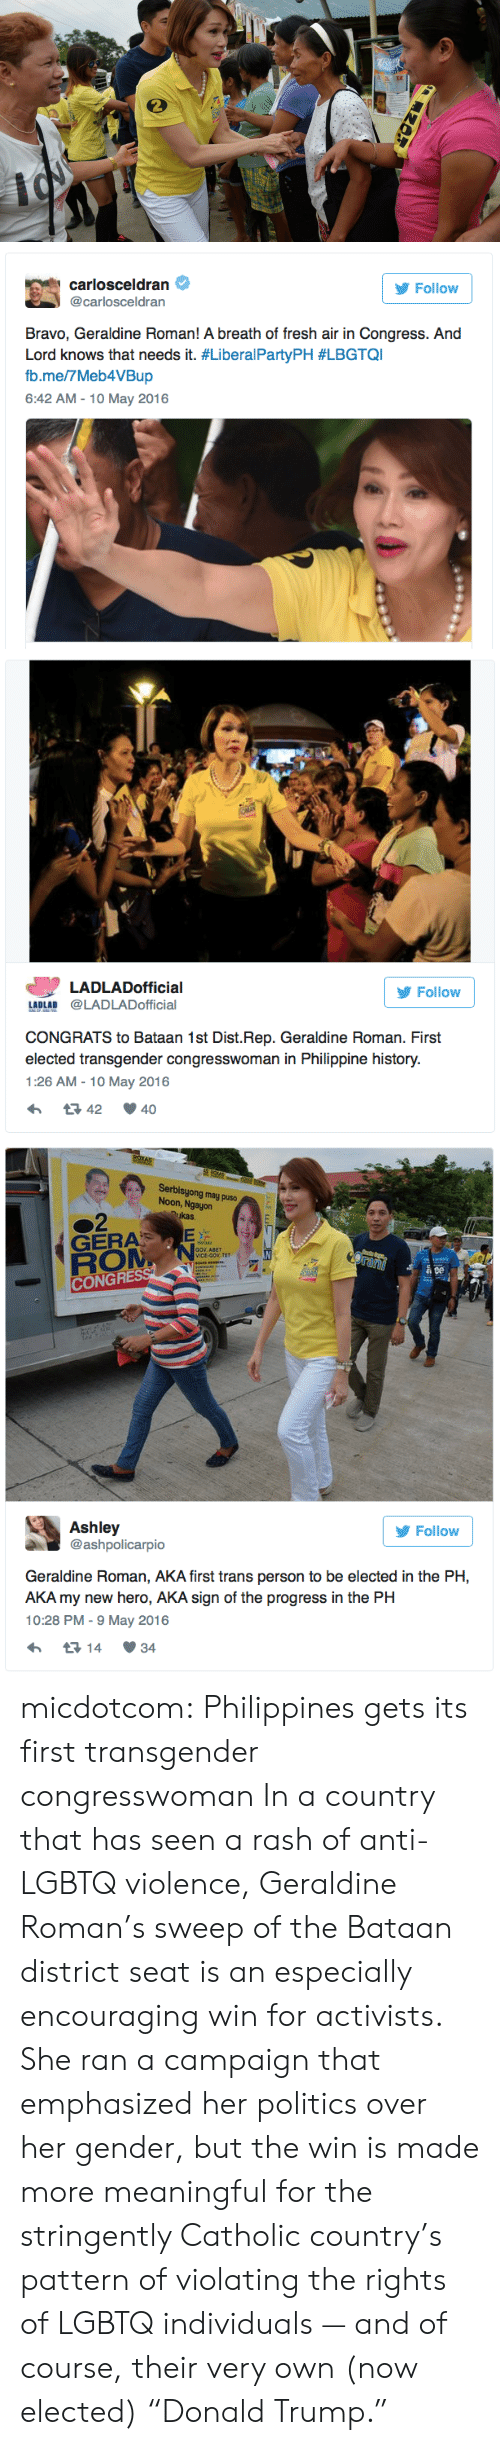 "Breath Of Fresh Air: carlosceldran  @carlosceldran  Follow  Bravo, Geraldine Roman! A breath of fresh air in Congress. And  Lord knows that needs it. #LiberalPartyPH #LBGTQI  b.me/7Meb4VBup  6:42 AM - 10 May 2016   LADLADofficial  Follow  LADLAD @LADLADofficial  CONGRATS to Bataan 1st Dist.Rep. Geraldine Roman. First  elected transgender congresswoman in Philippine history.  1:26 AM-10 May 2016  42 40   Serbisyong may puso  Noon, Ngayon  kas  GERA  GOV ABET  VICE-GOV TET  CONGR  Ashley  @ashpolicarpio  У Follow  Geraldine Roman, AKA first trans person to be elected in the PH,  AKA my new hero, AKA sign of the progress in the PH  10:28 PM- 9 May 2016  14 34 micdotcom: Philippines gets its first transgender congresswoman In a country that has seen a rash of anti-LGBTQ violence, Geraldine Roman's sweep of the Bataan district seat is an especially encouraging win for activists. She ran a campaign that emphasized her politics over her gender, but the win is made more meaningful for the stringently Catholic country's pattern of violating the rights of LGBTQ individuals — and of course, their very own (now elected) ""Donald Trump."""